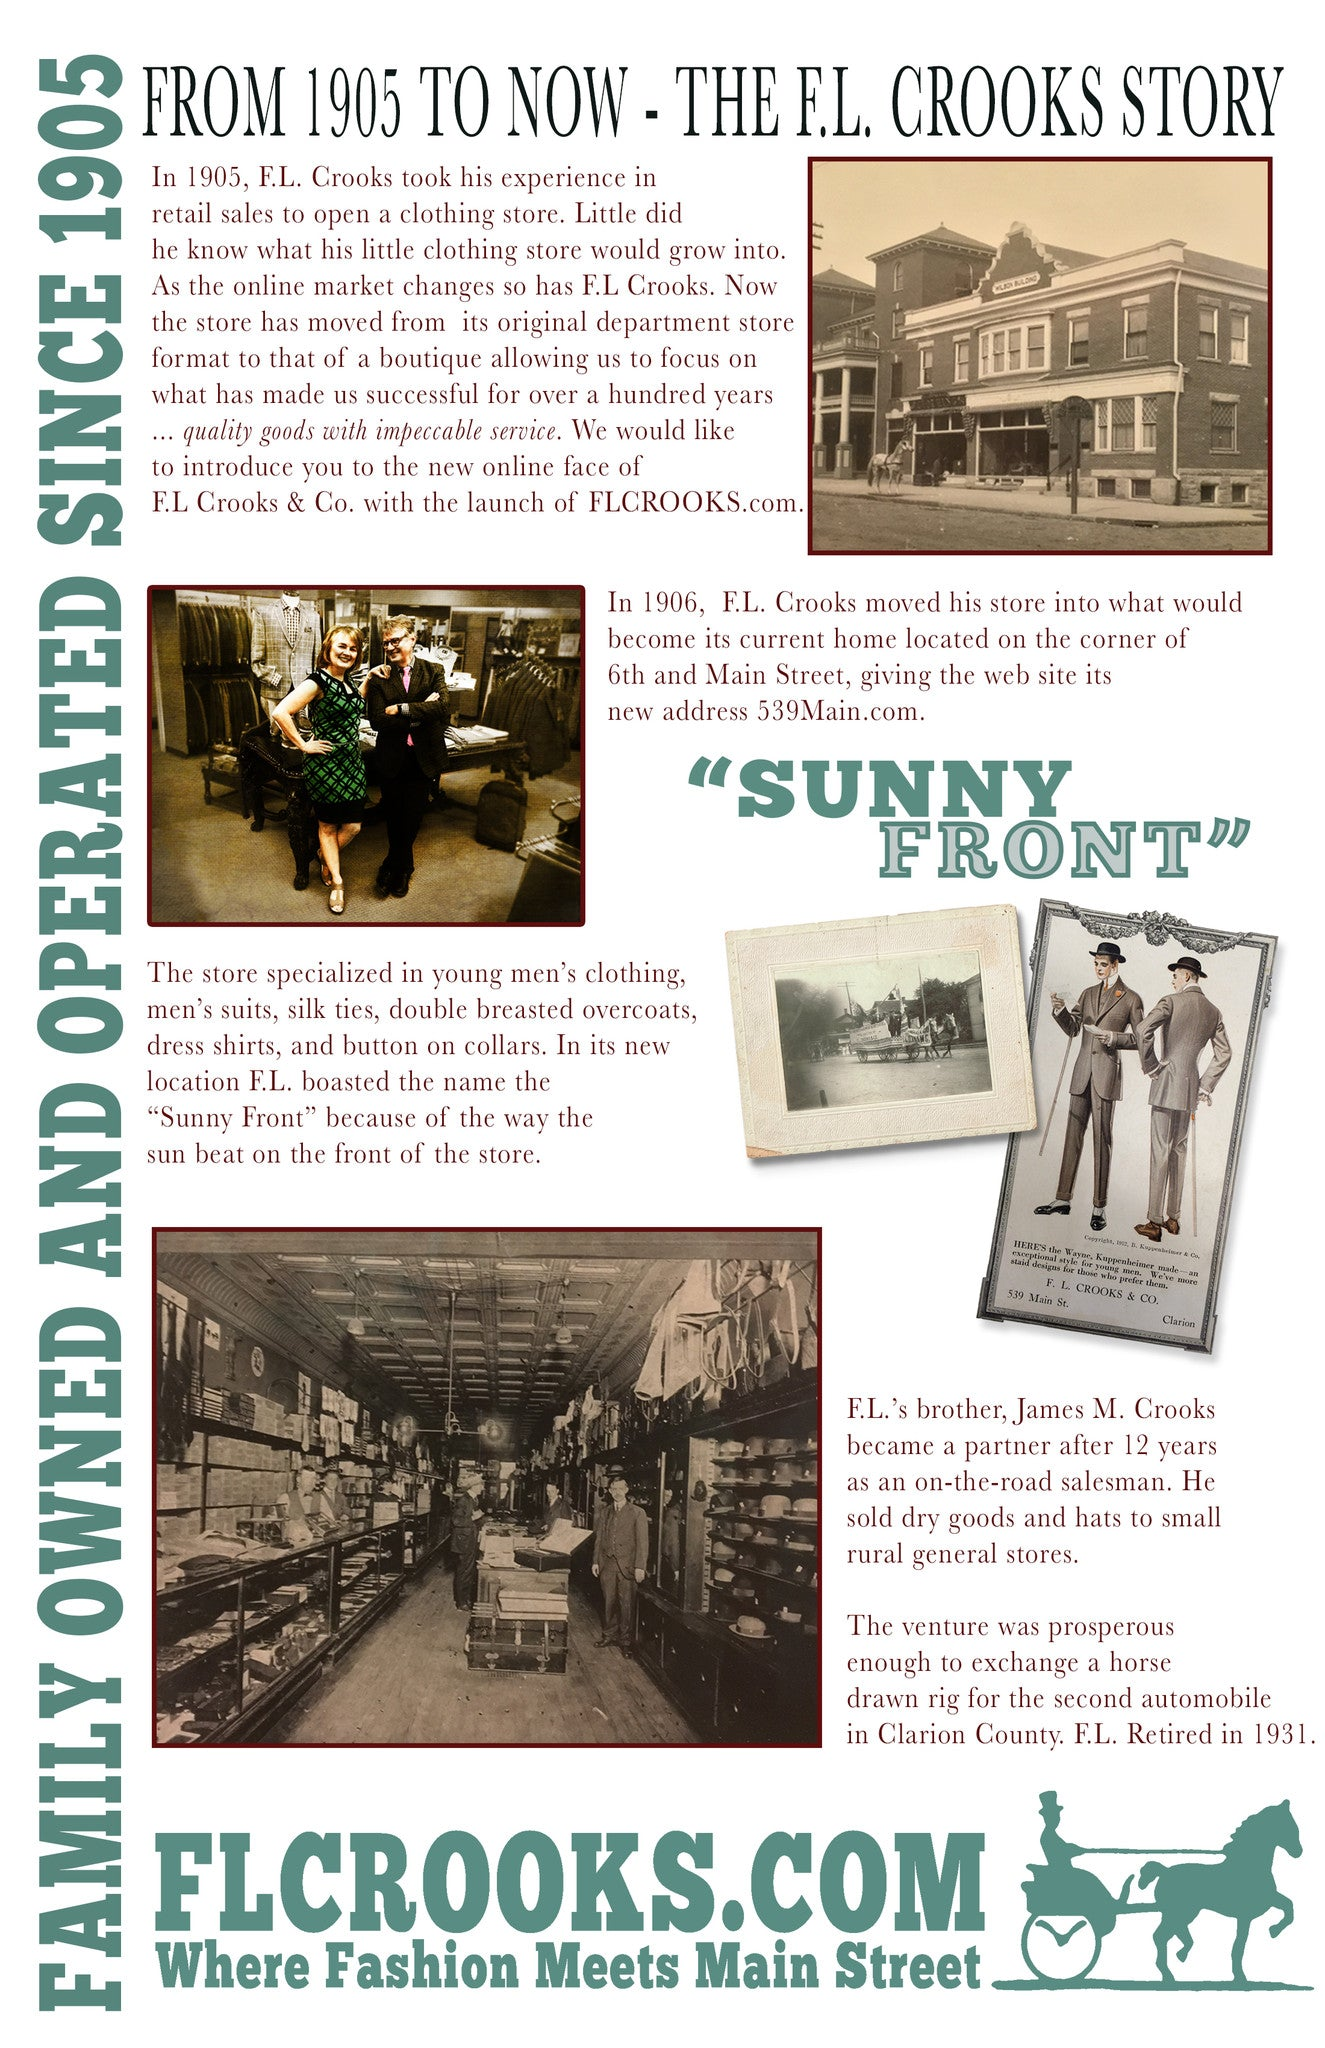 "In 1905, F.L. Crooks took his experience in  retail sales to open a clothing store. Little did  he know what his little clothing store would grow into. As the online market changes so has F.L Crooks. Now the store has moved from  its original department store  format to that of a boutique allowing us to focus on what has made us successful for over a hundred years ... quality goods with impeccable service. We would like to introduce you to the new online face of  F.L Crooks & Co. with the launch of FLCROOKS.com. In 1906,  F.L. Crooks moved his store into what would  become its current home located on the corner of 6th and Main Street, giving the web site its  new address 539Main.com.   The store specialized in young men's clothing,  men's suits, silk ties, double breasted overcoats, dress shirts, and button on collars. In its new  location F.L. boasted the name the  "" Sunny Front"" because of the way the  sun beat on the front of the store. F.L.'s brother, James M. Crooks became a partner after 12 years  as an on-the-road salesman. He  sold dry goods and hats to small rural general stores.  The venture was prosperous  enough to exchange a horse  drawn rig for the second automobile  in Clarion County. F.L. Retired in 1931."